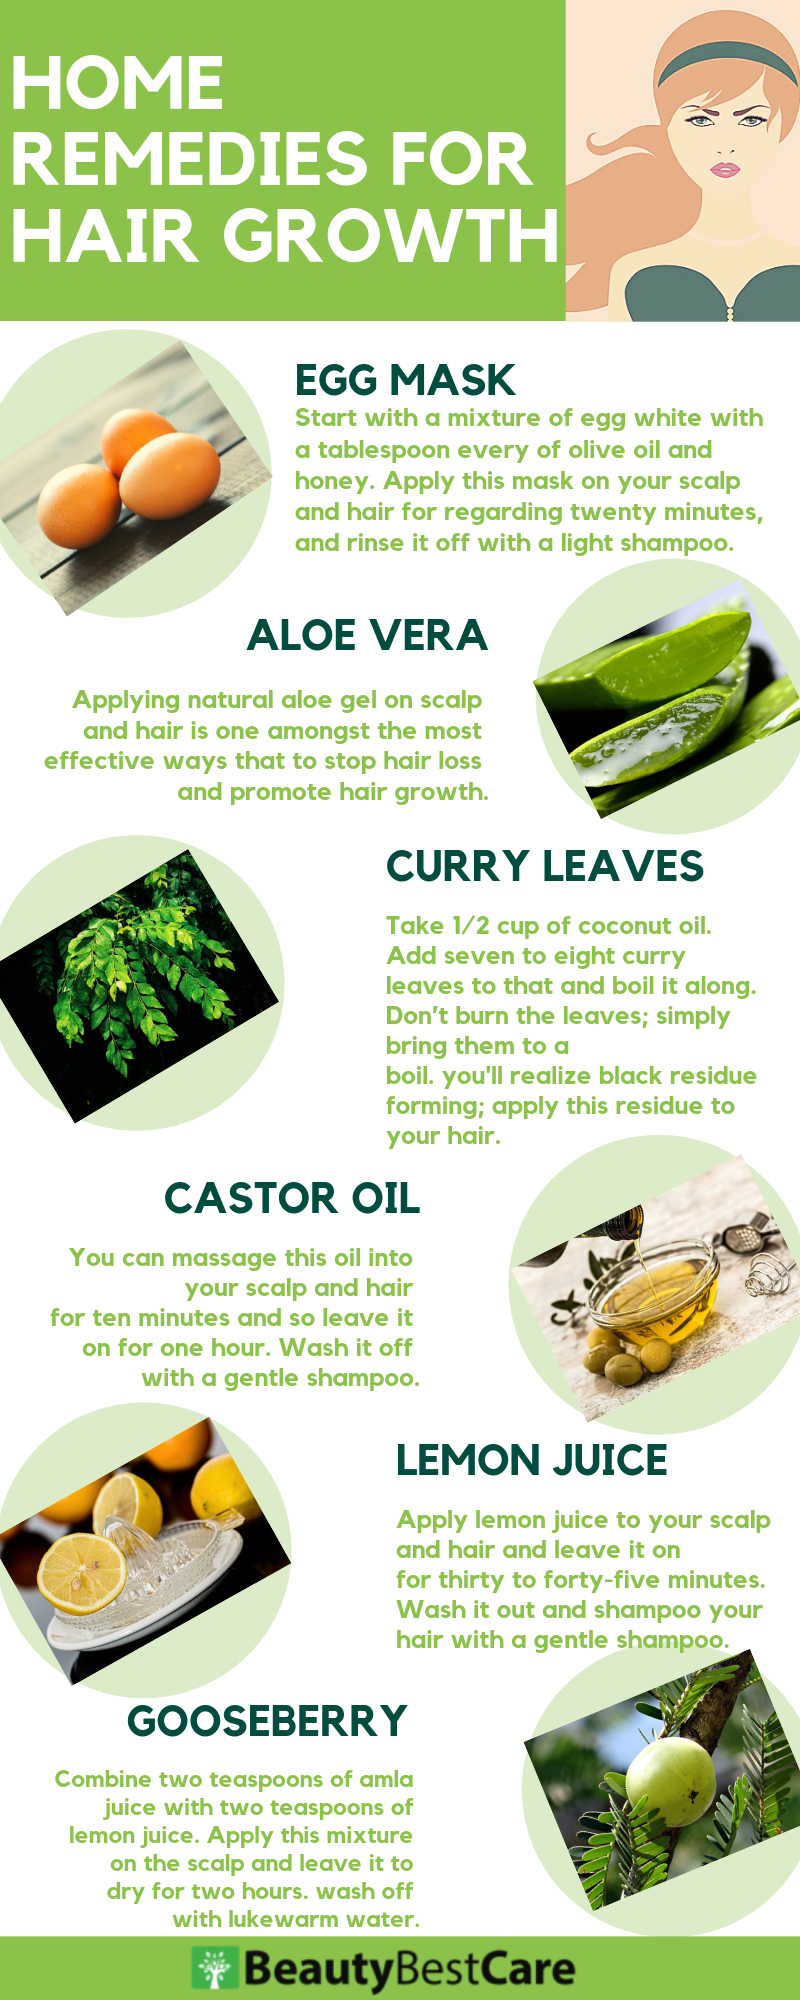 Home Remedies For Hair Growth and Thickness Home health